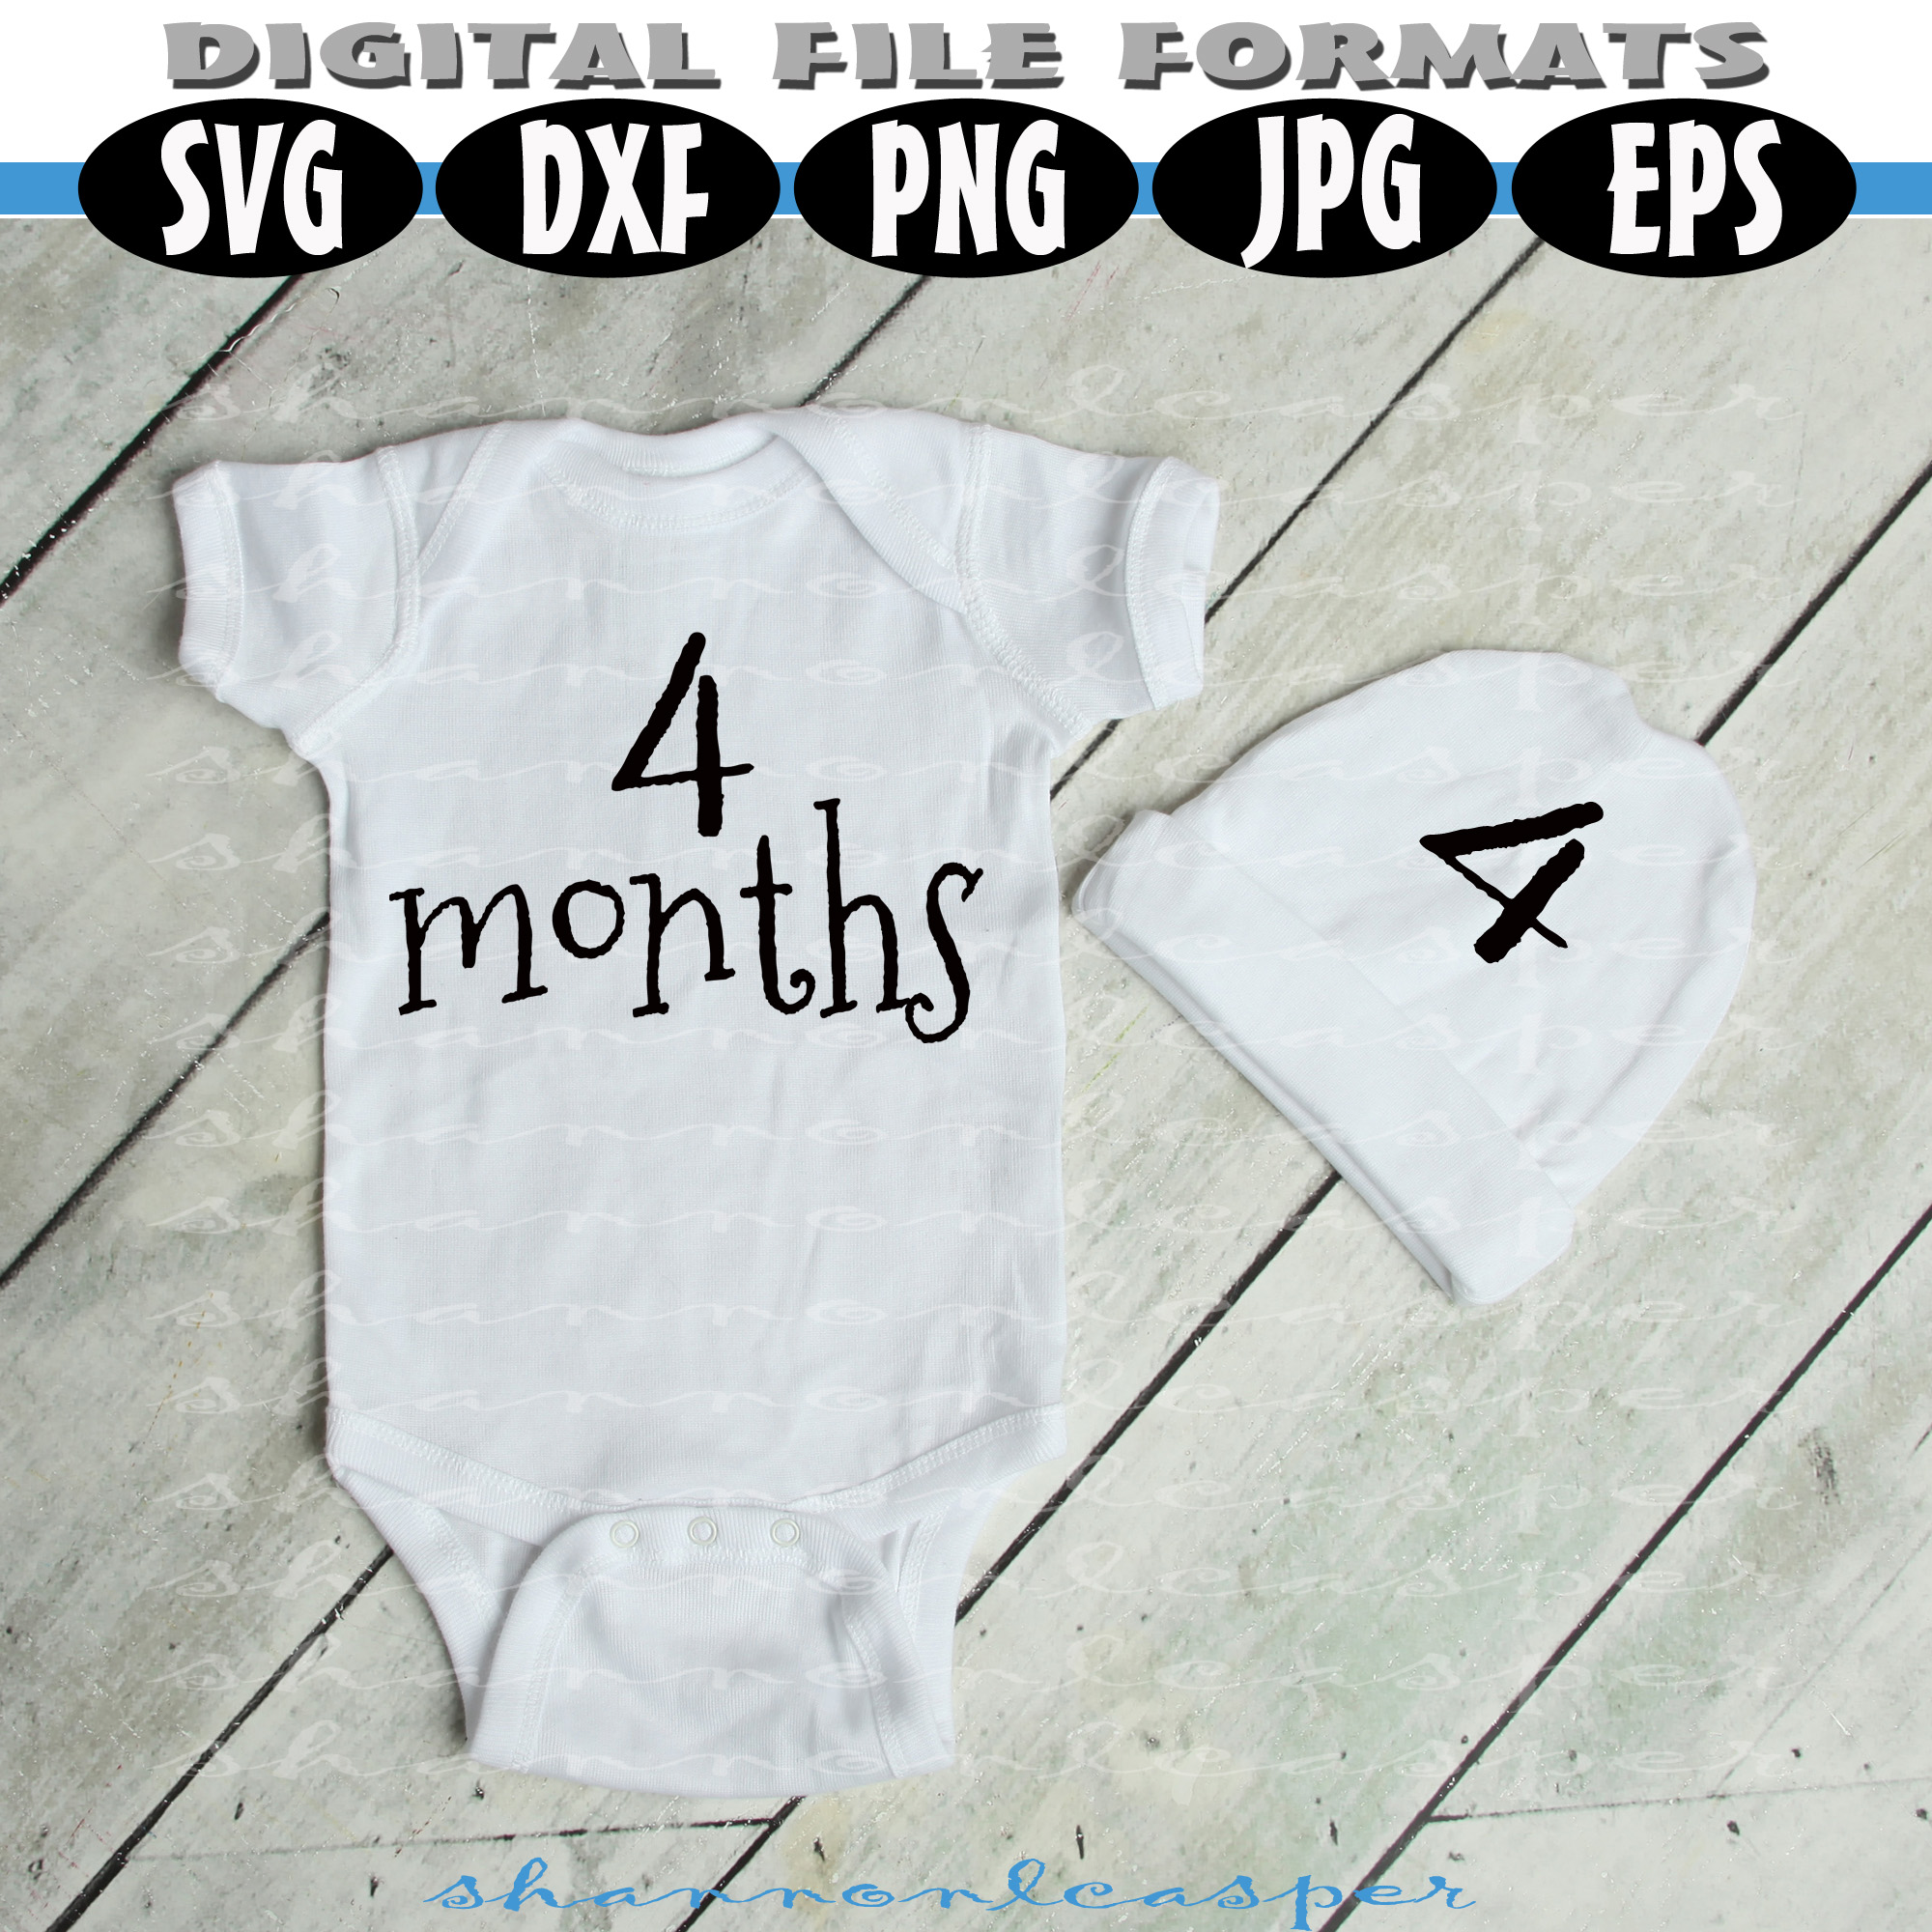 Baby Shirt Months 1-12 for Growing Pictures example image 2